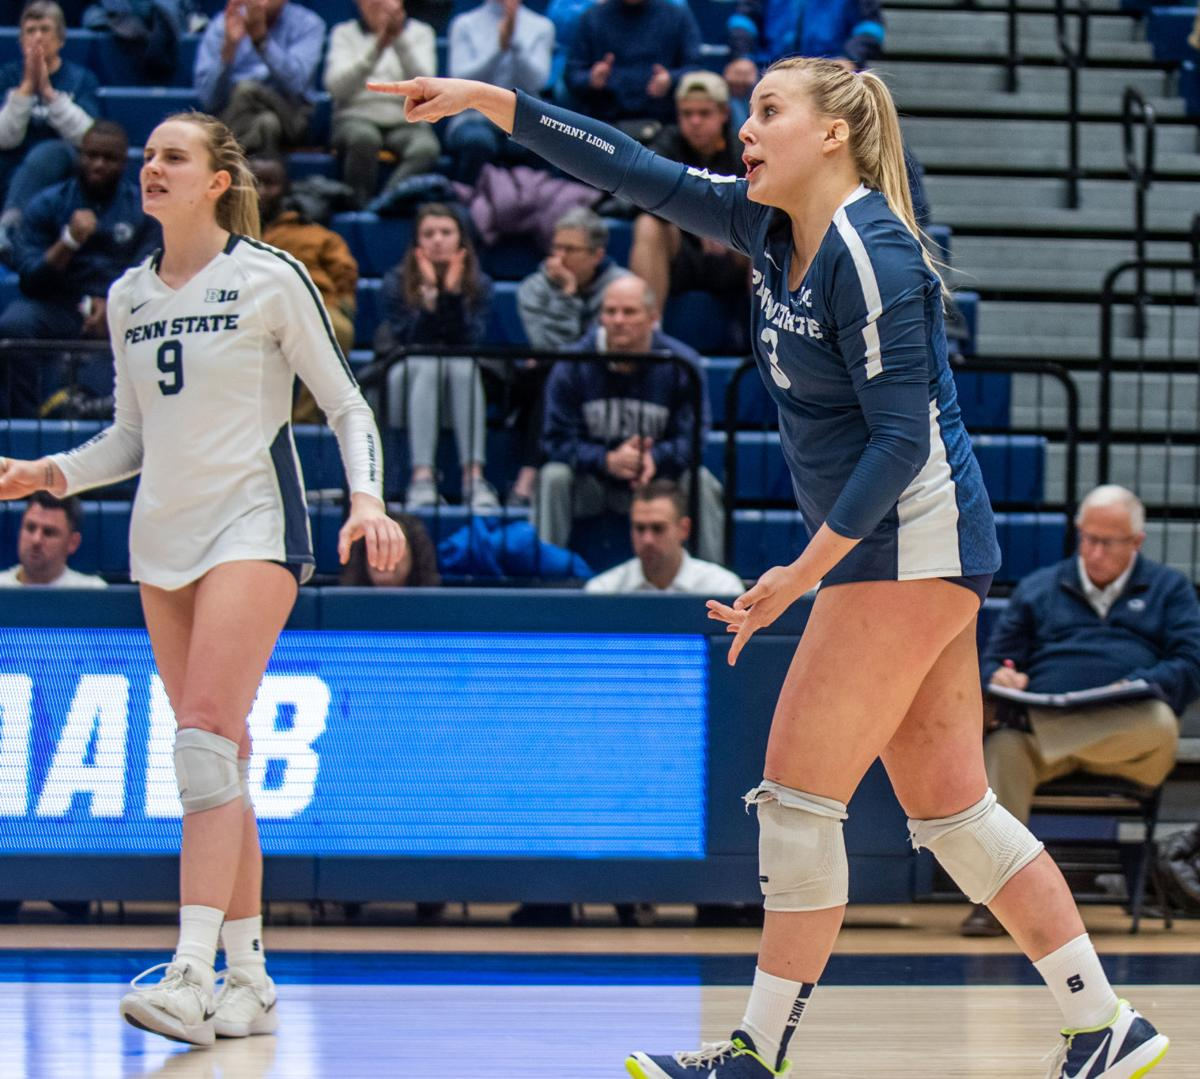 Penn State Women S Volleyball S Kendall White Becomes Program S All Time Digs Leader Penn State Volleyball News Daily Collegian Collegian Psu Edu